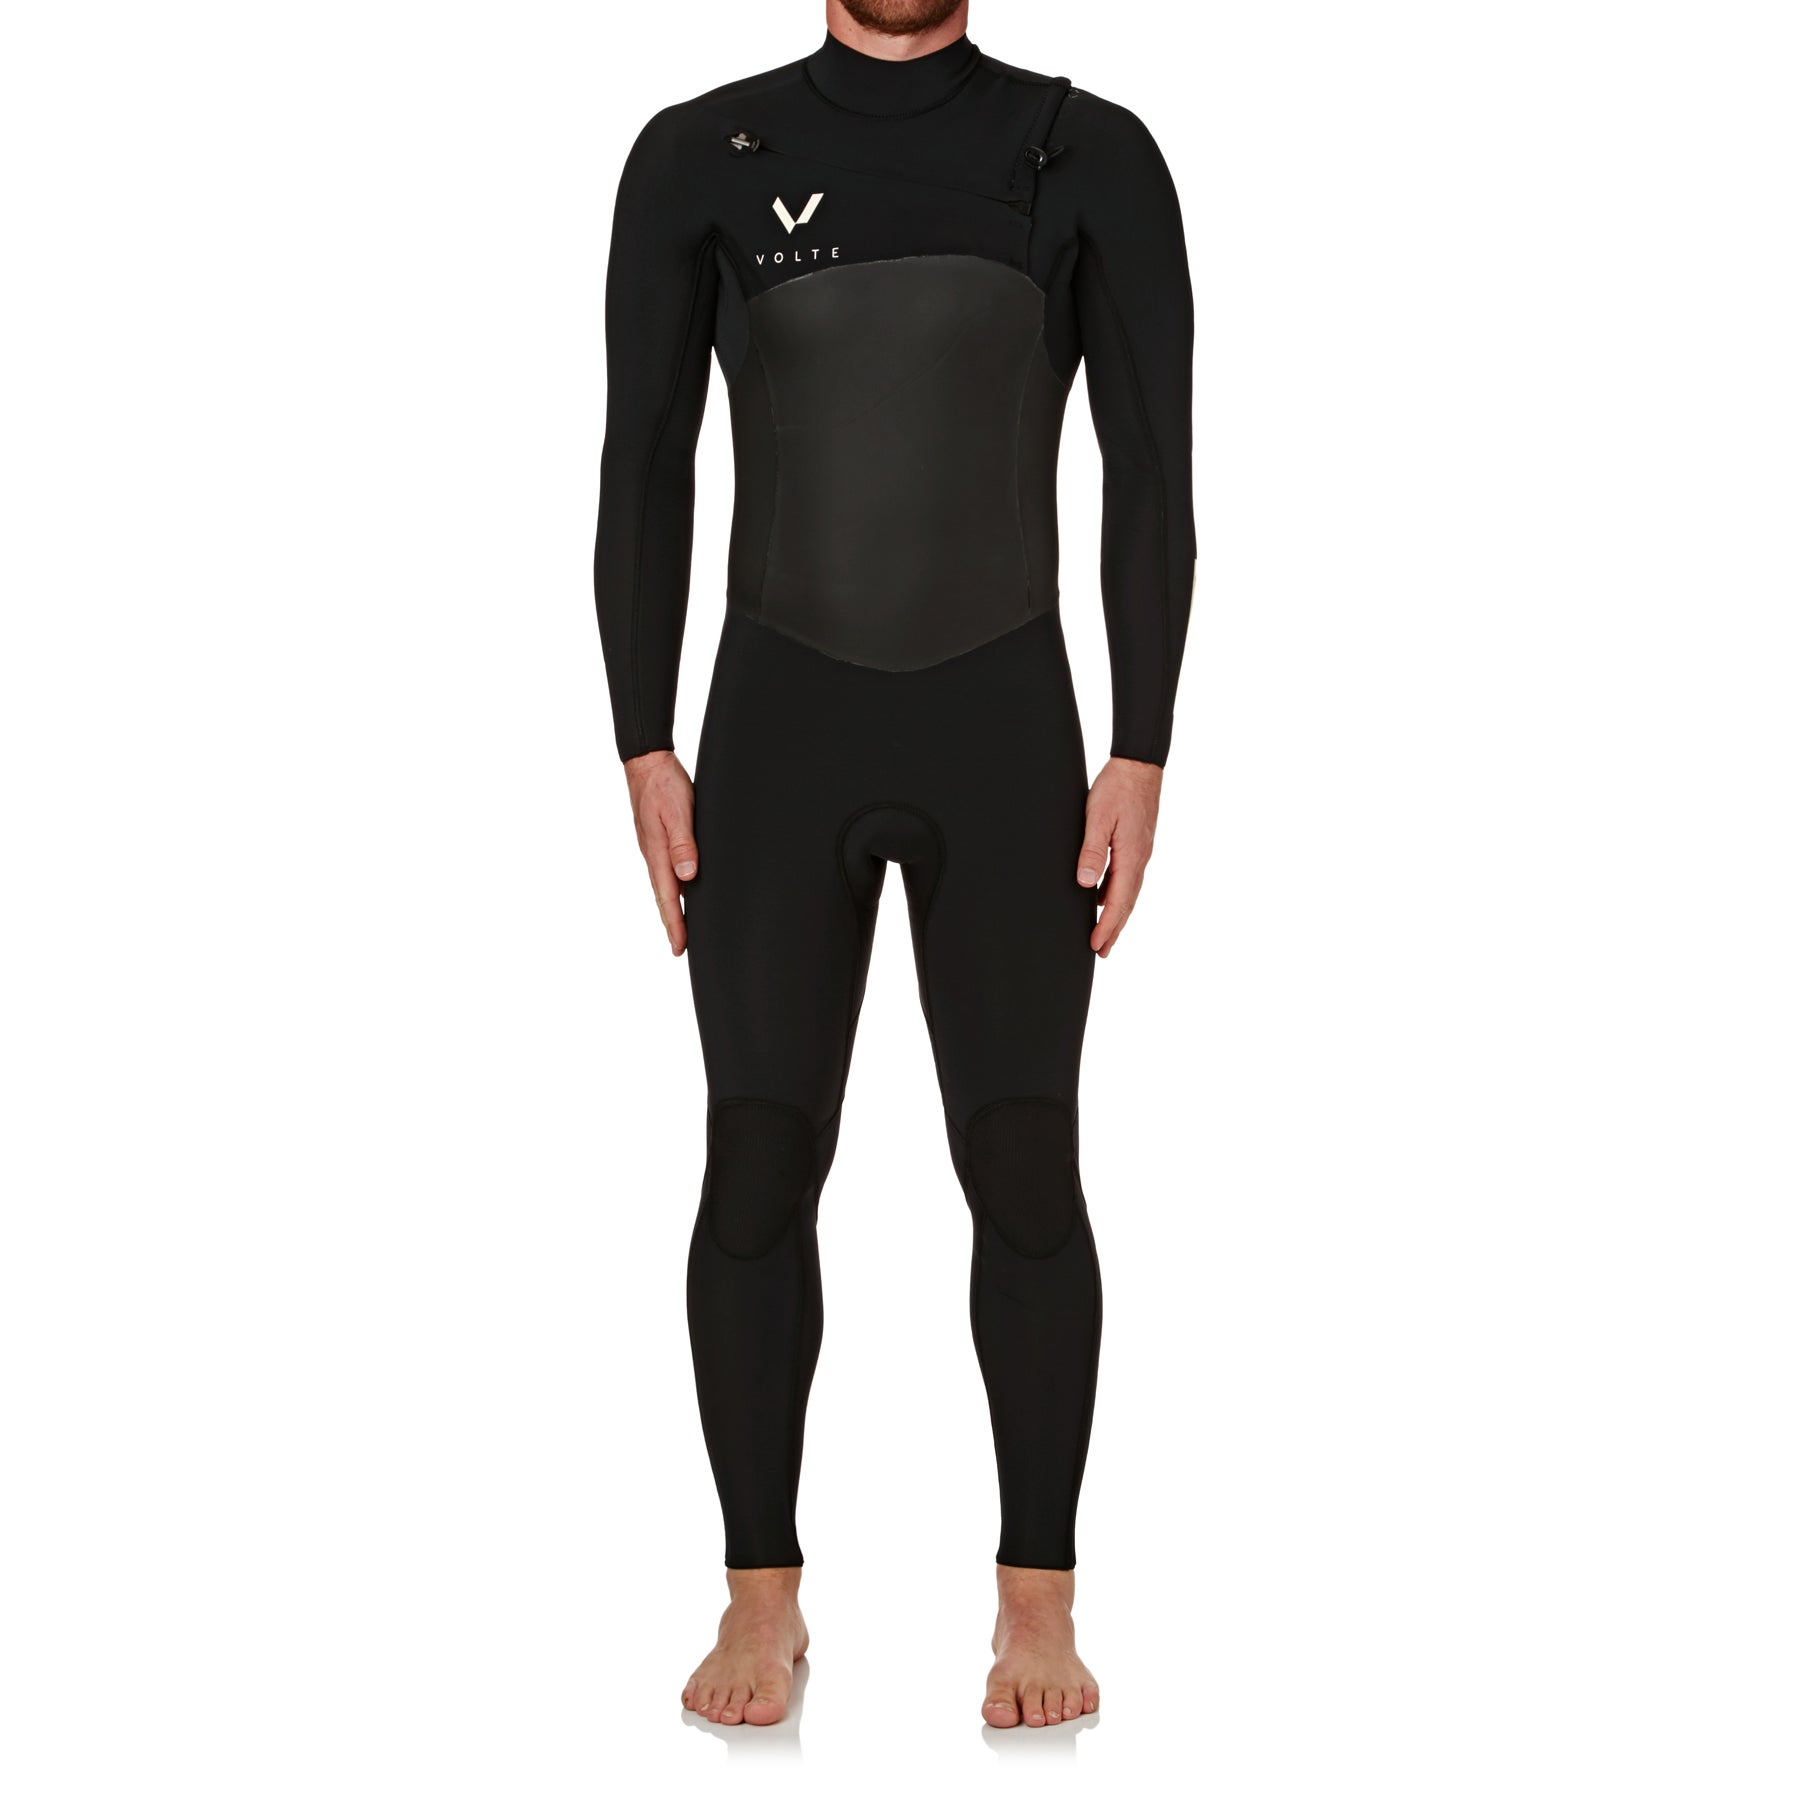 Volte 4-3mm 2018 Supreme Chest Zip Wetsuit